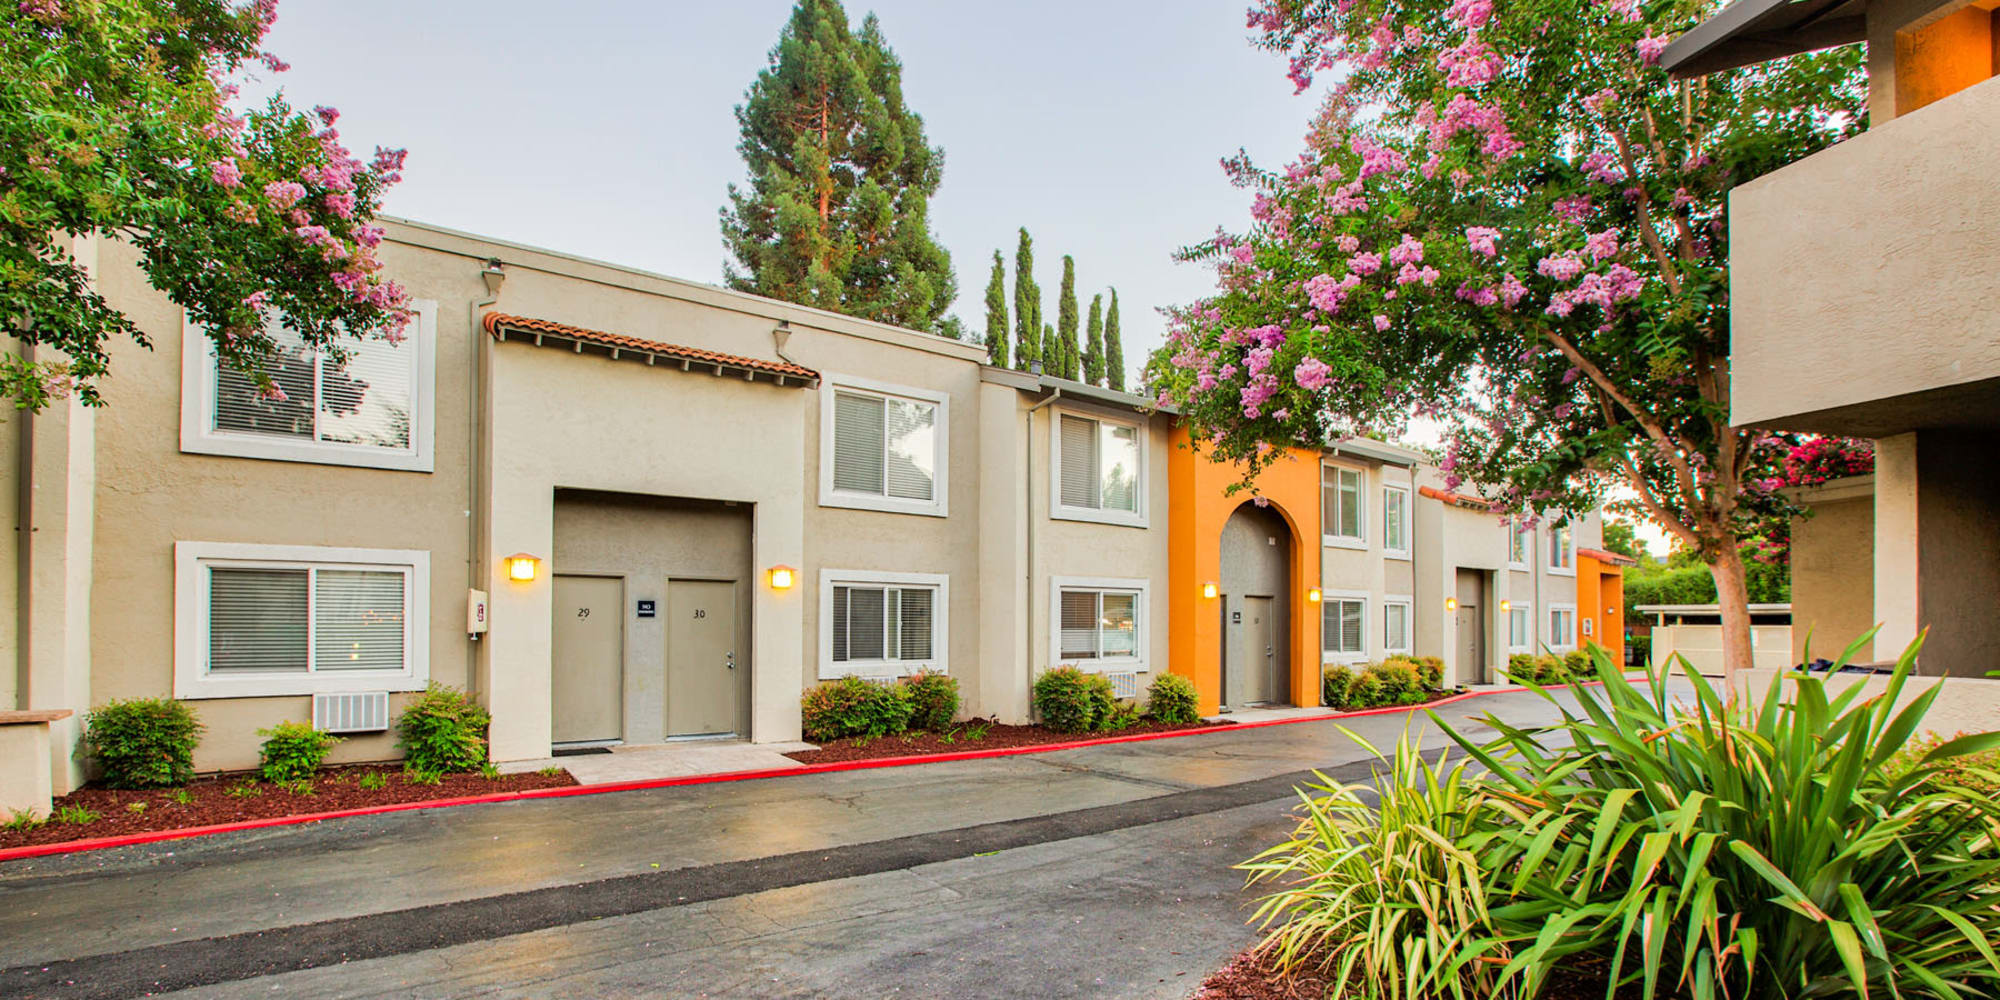 Beautifully maintained grounds at Pleasanton Place Apartment Homes in Pleasanton, California